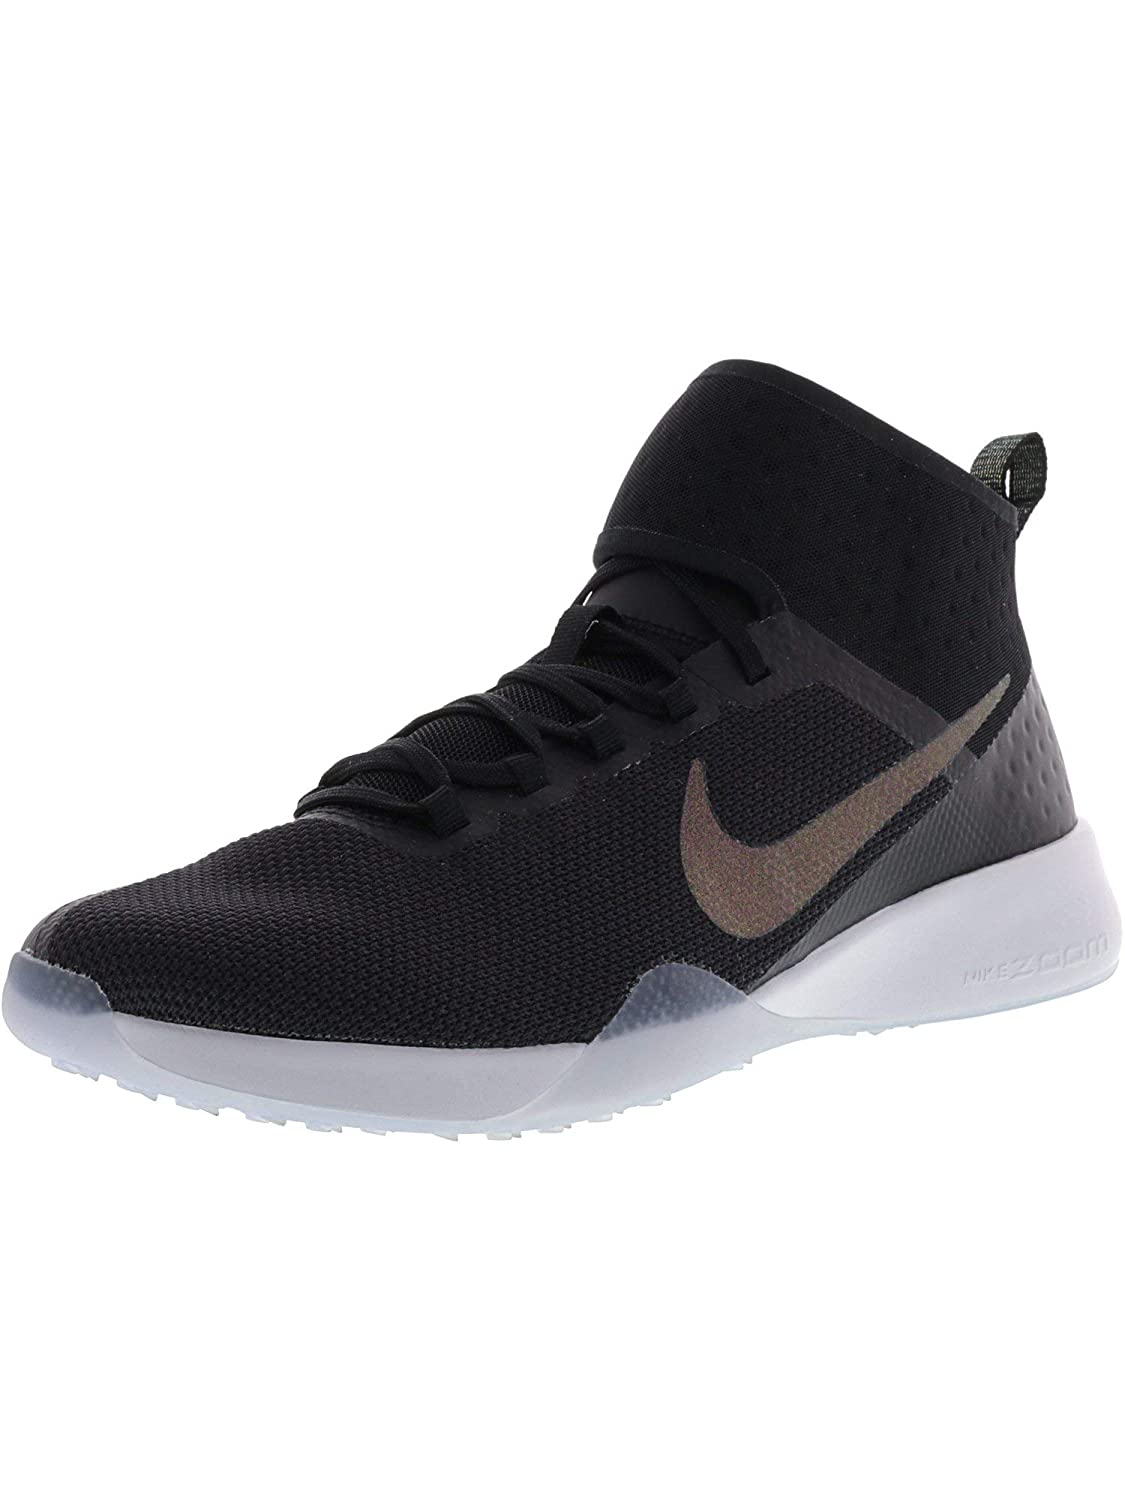 b516f2ec843a8 Nike Women's Air Zoom Strong 2 Metallic Black/Multicolor Ankle-High Mesh  Training Shoes - 6.5M